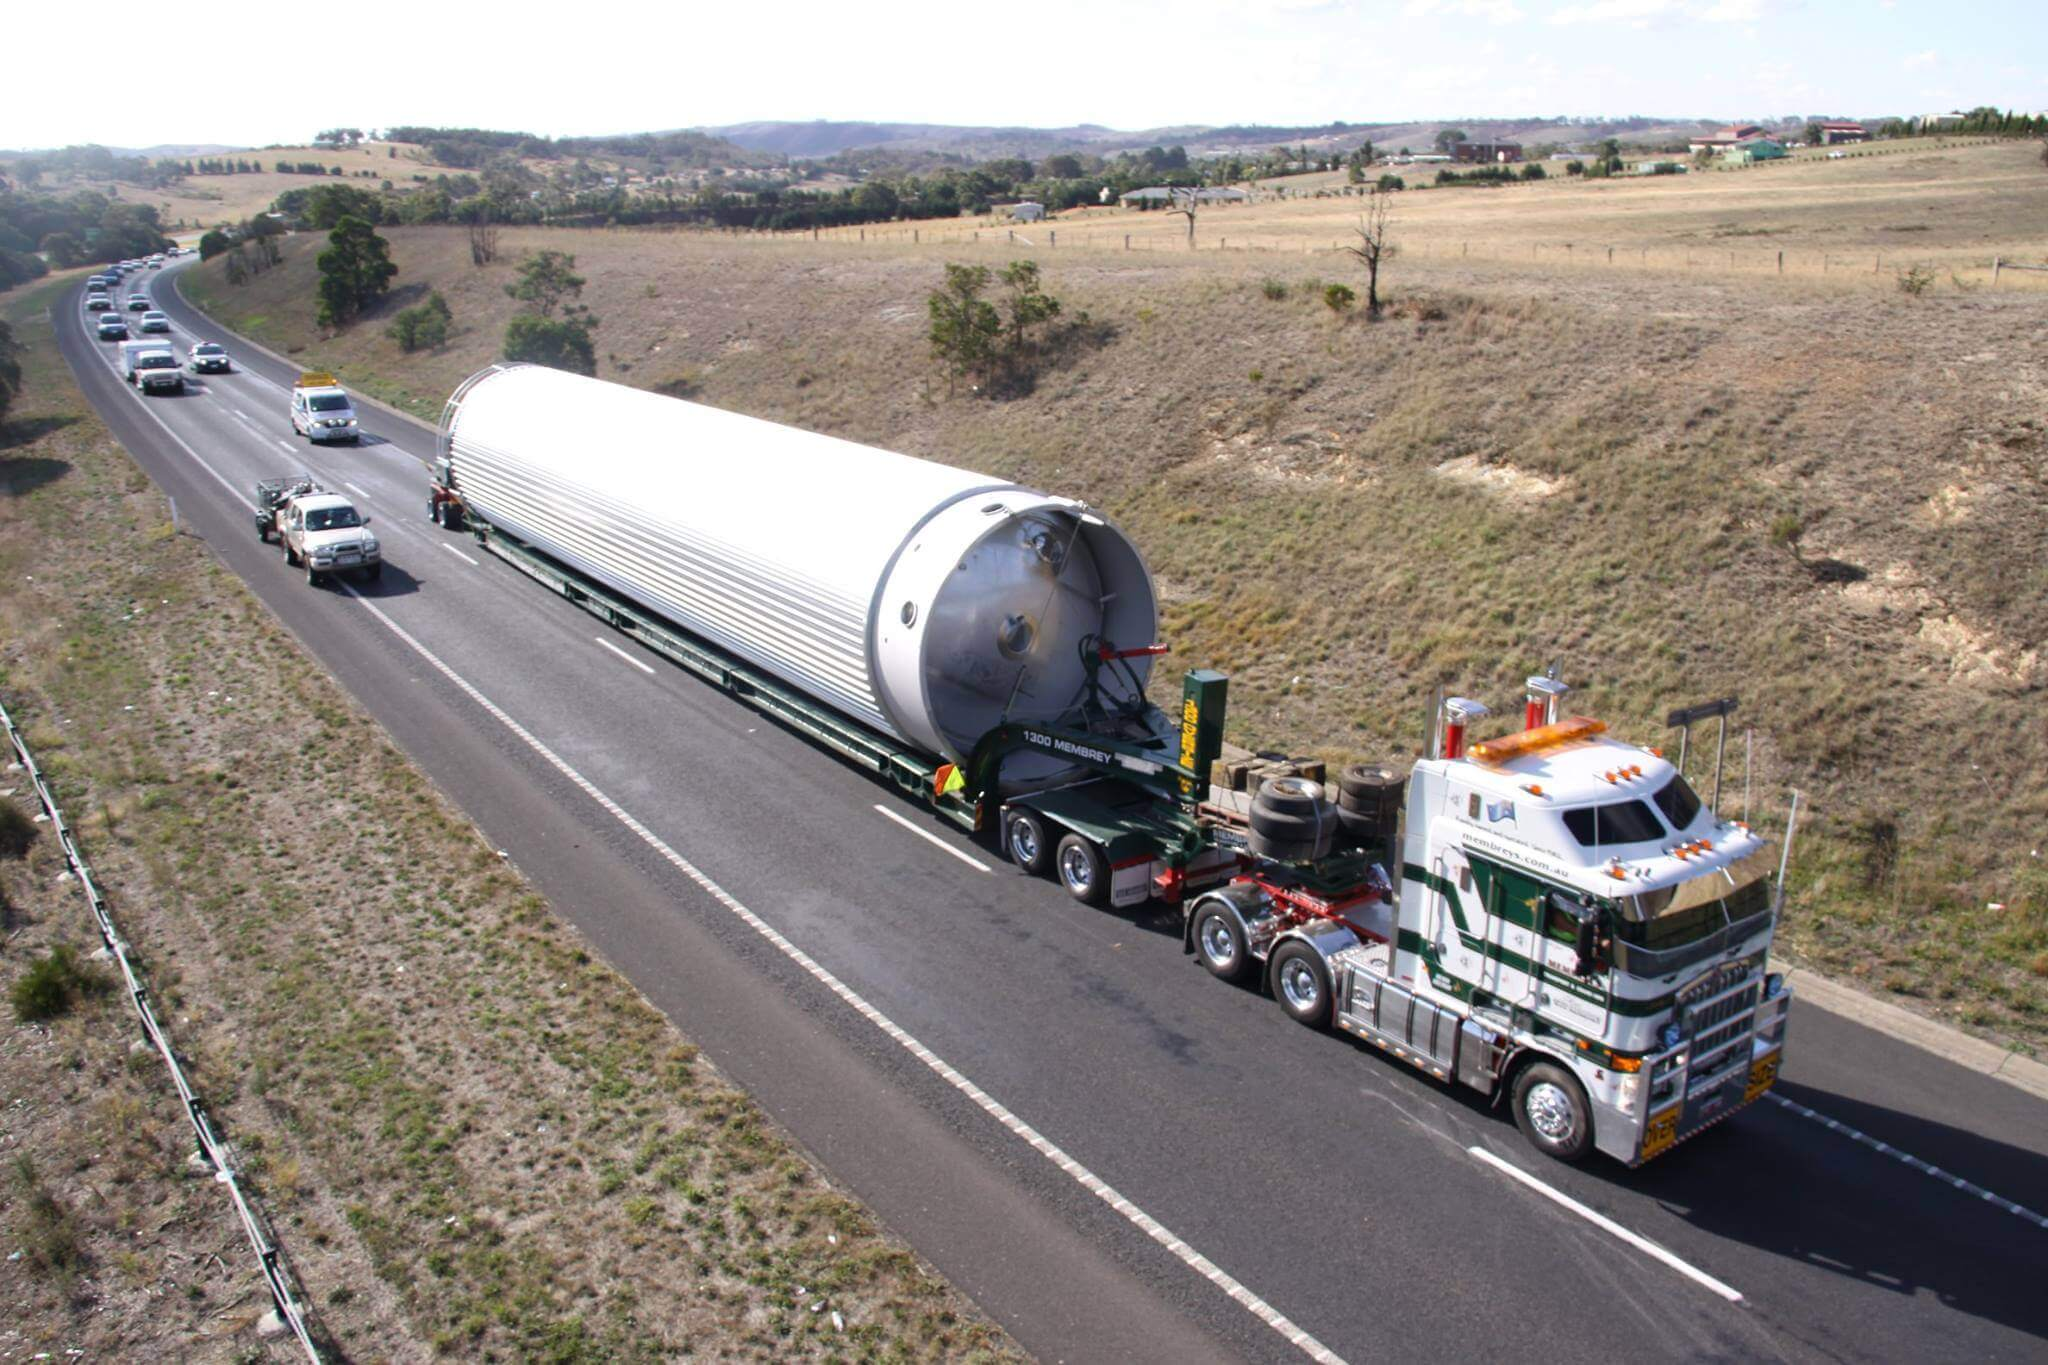 Stainless Steel Silo move on Vessel Trailer